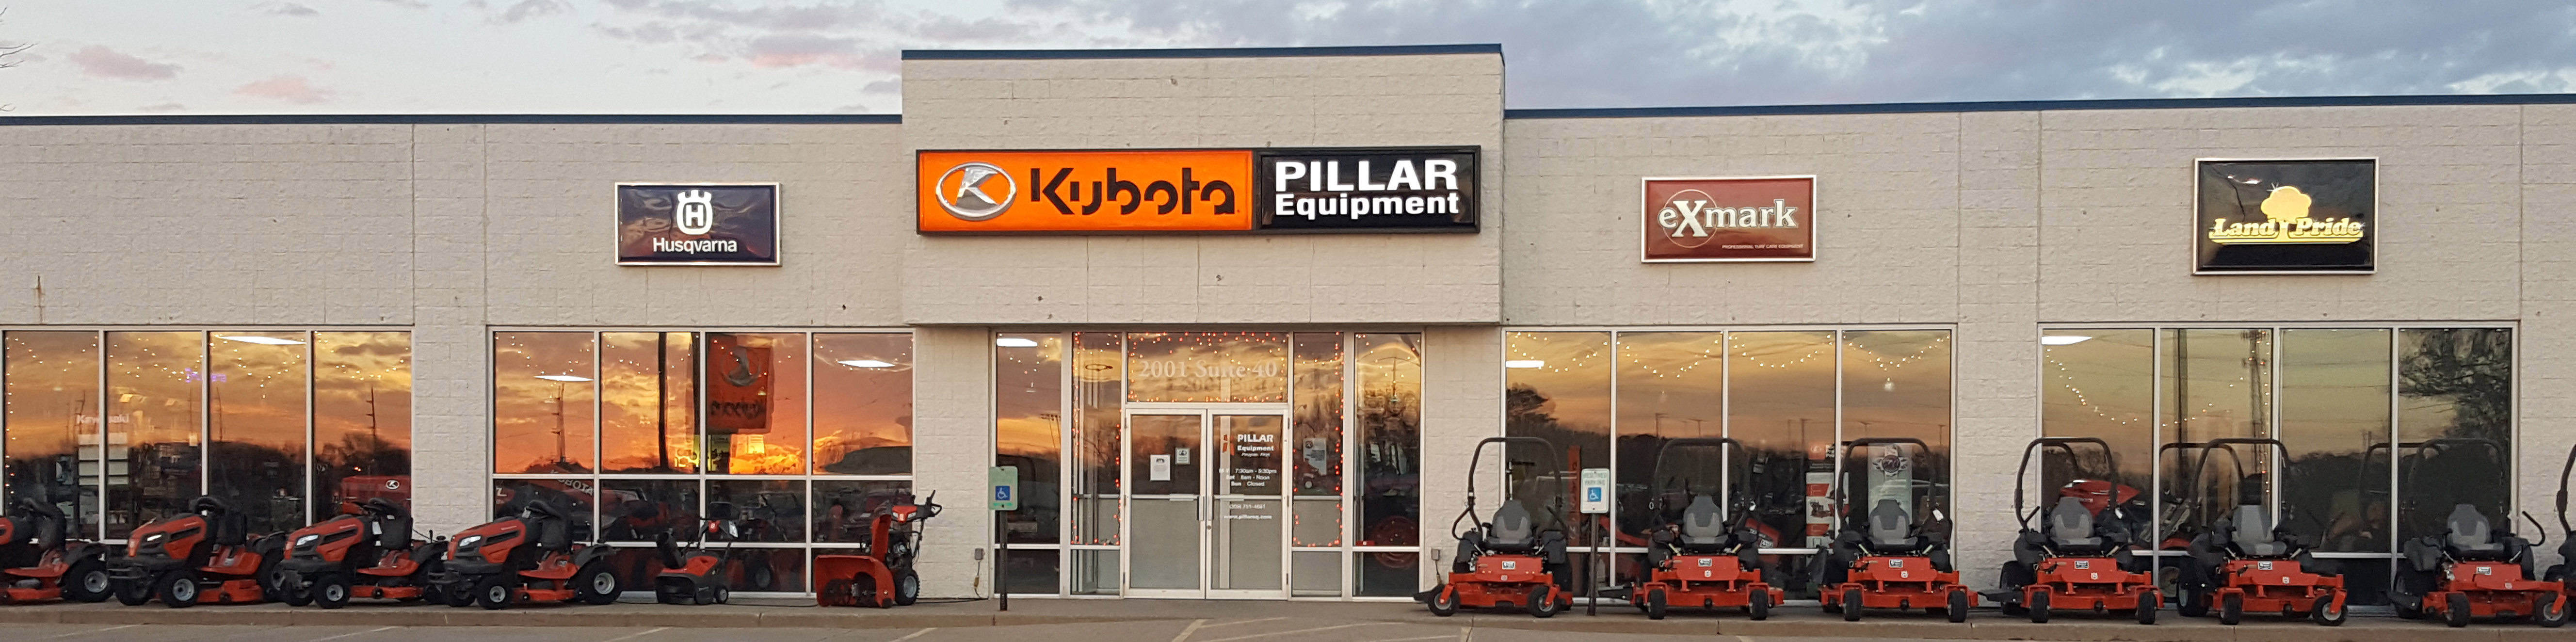 Pillar Equipment store front in Silvis, Illinois